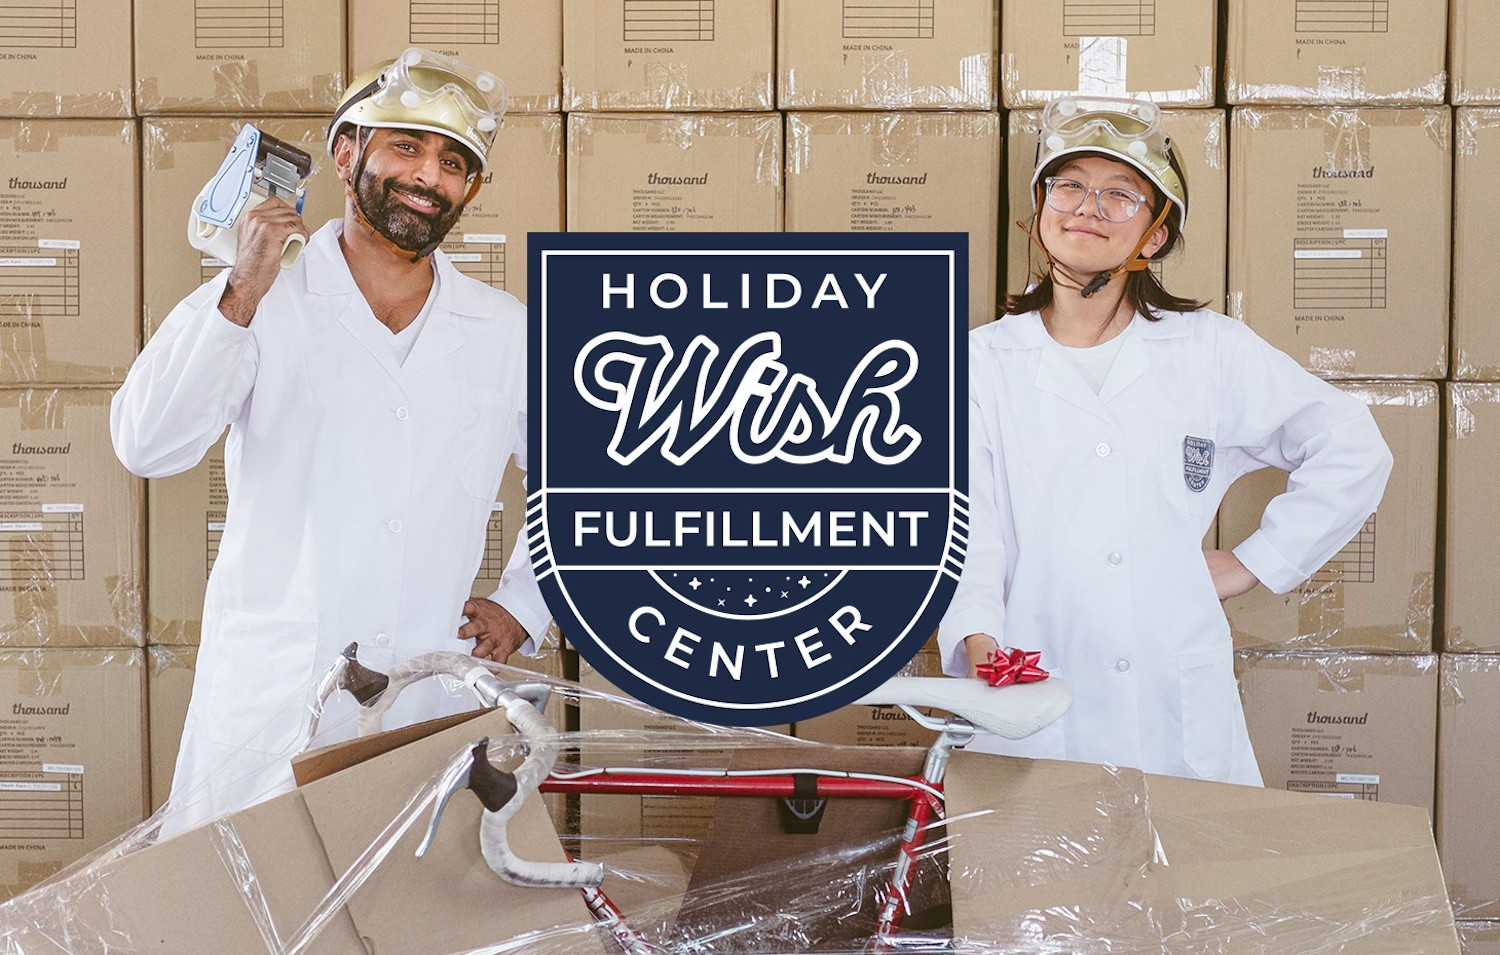 Thousand Holiday Wish Fulfillment Center